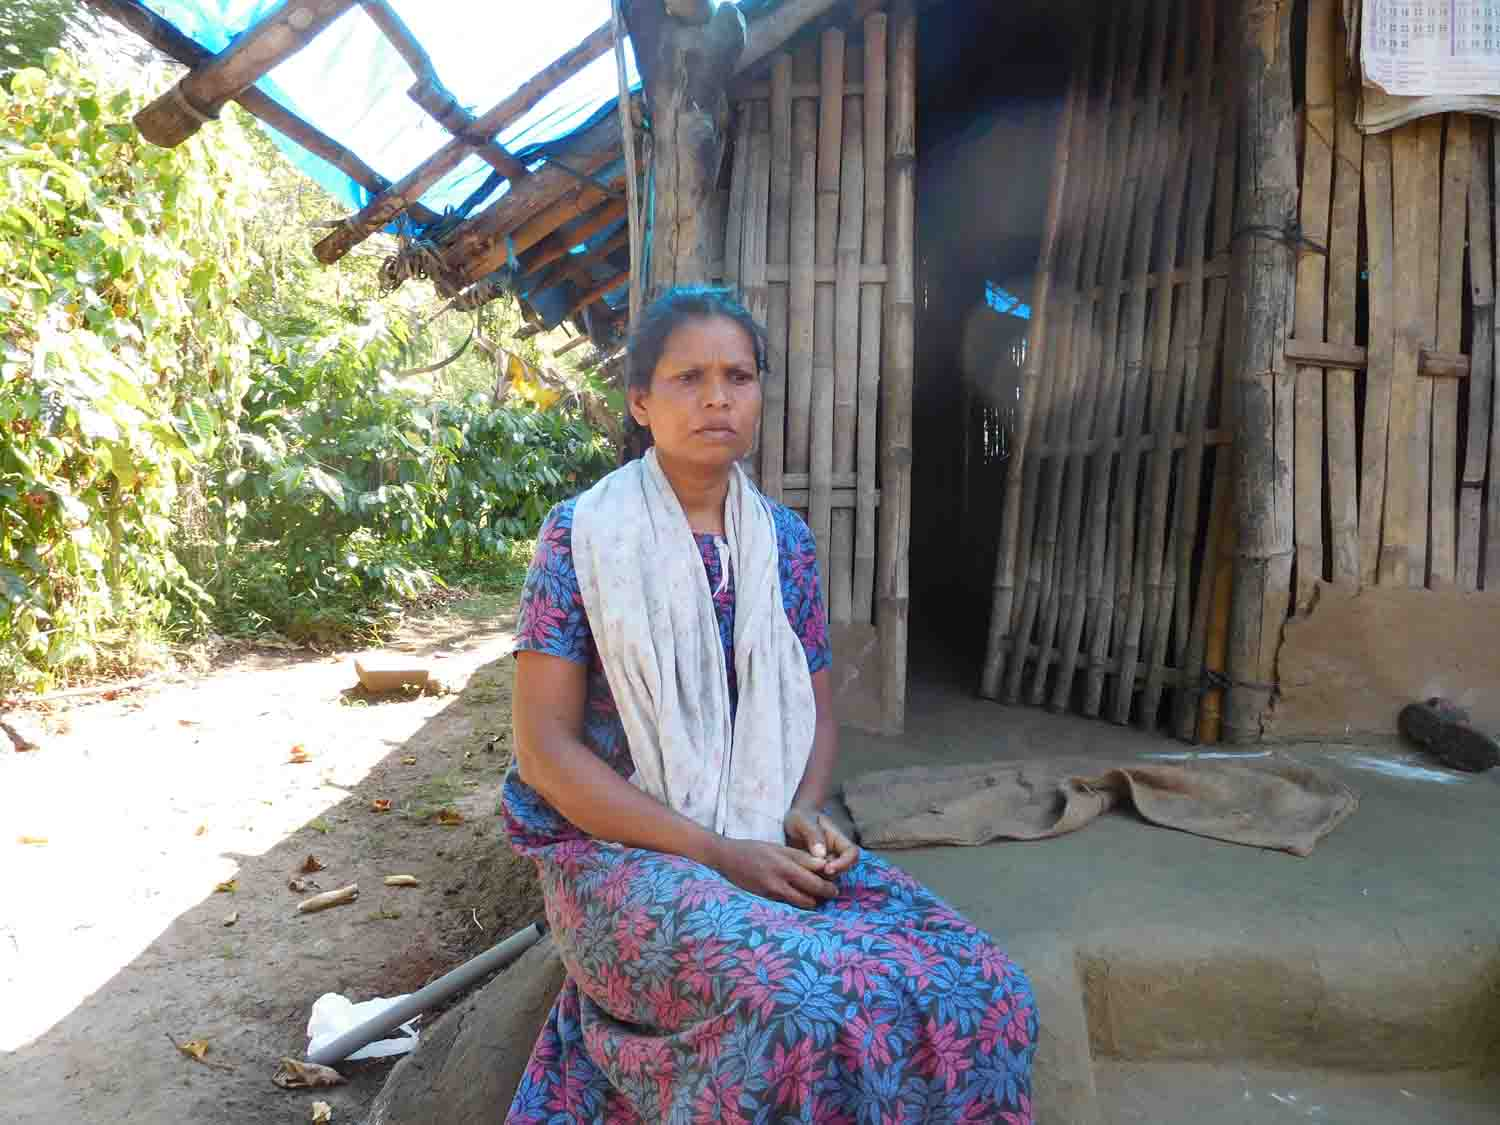 Radha complains of residual health problems after recovering from Kyasanur Forest Disease. Photo: TA Ameerudheen.